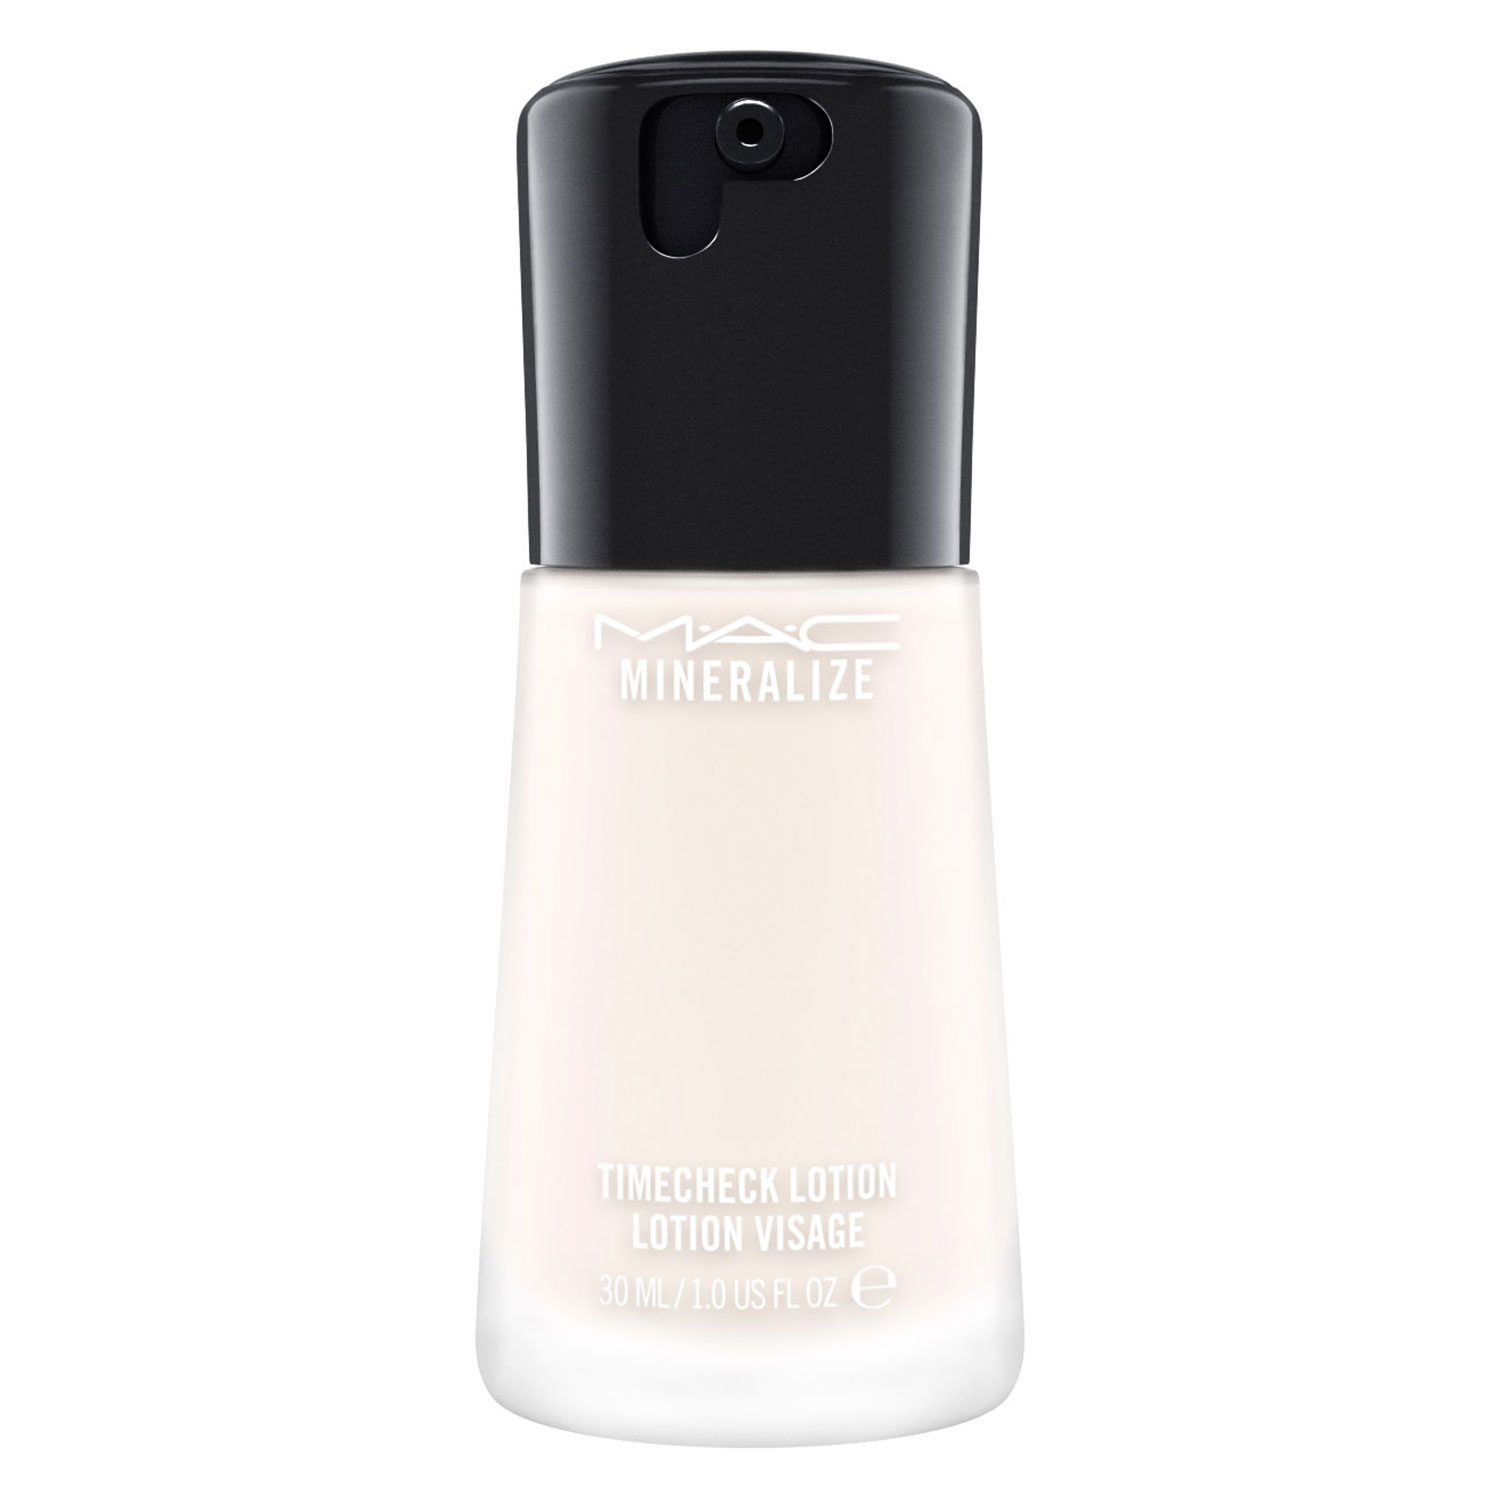 M·A·C Skin Care - Mineralize Timecheck Lotion - 30ml